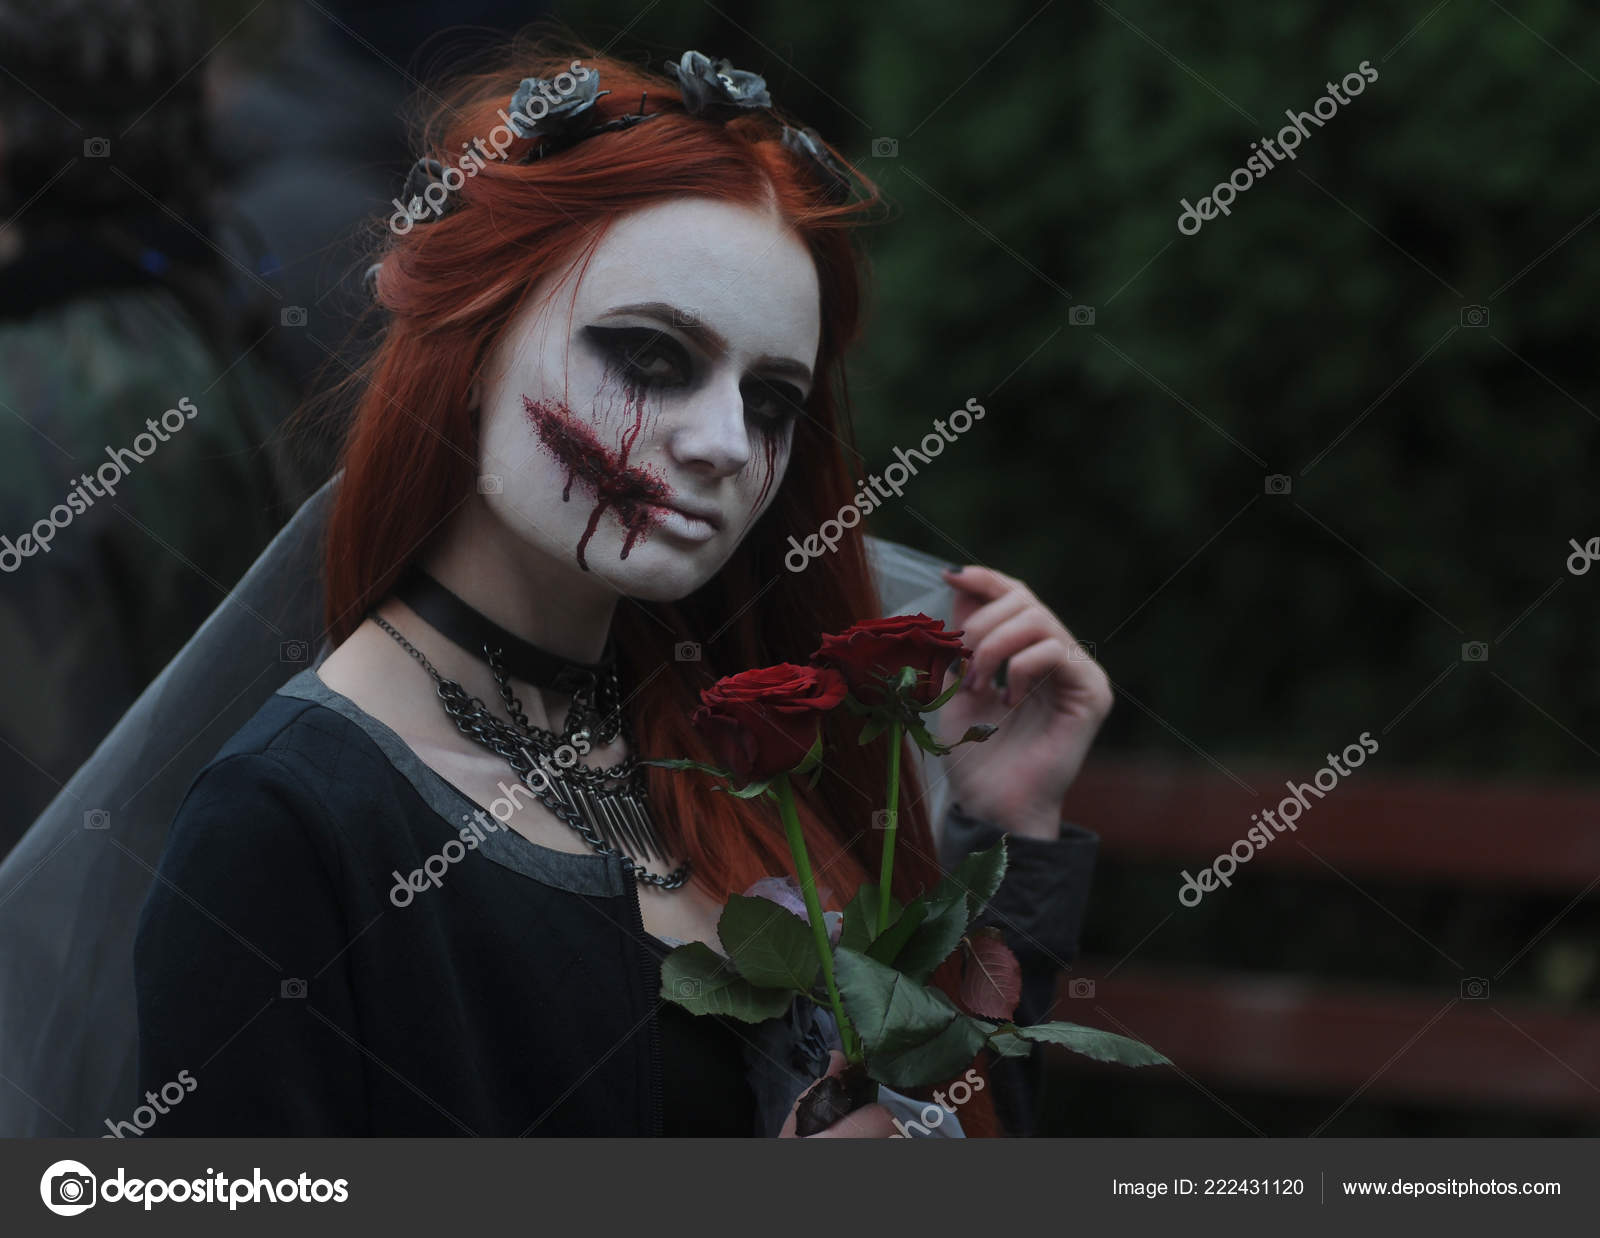 Young Woman Wearing Demonic Costume Make Takes Part Halloween Zombie Stock Editorial Photo C Fotos123 222431120